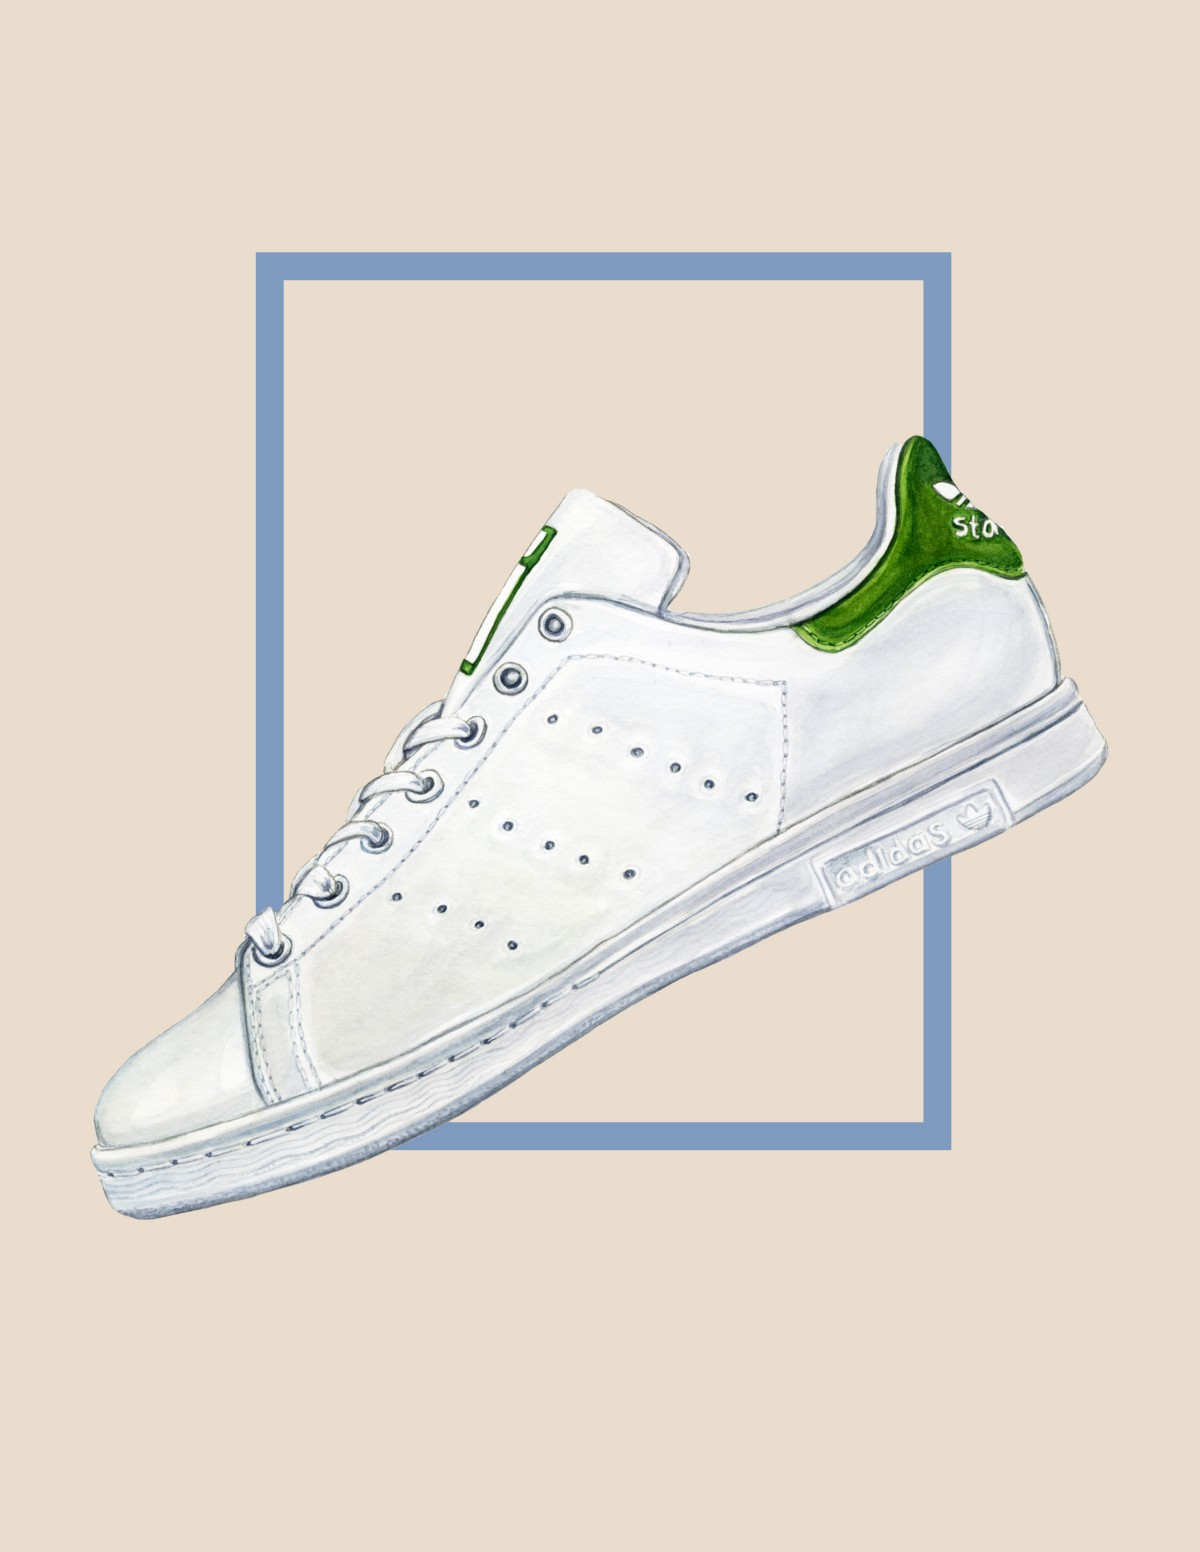 Stan Smith, the sneakers